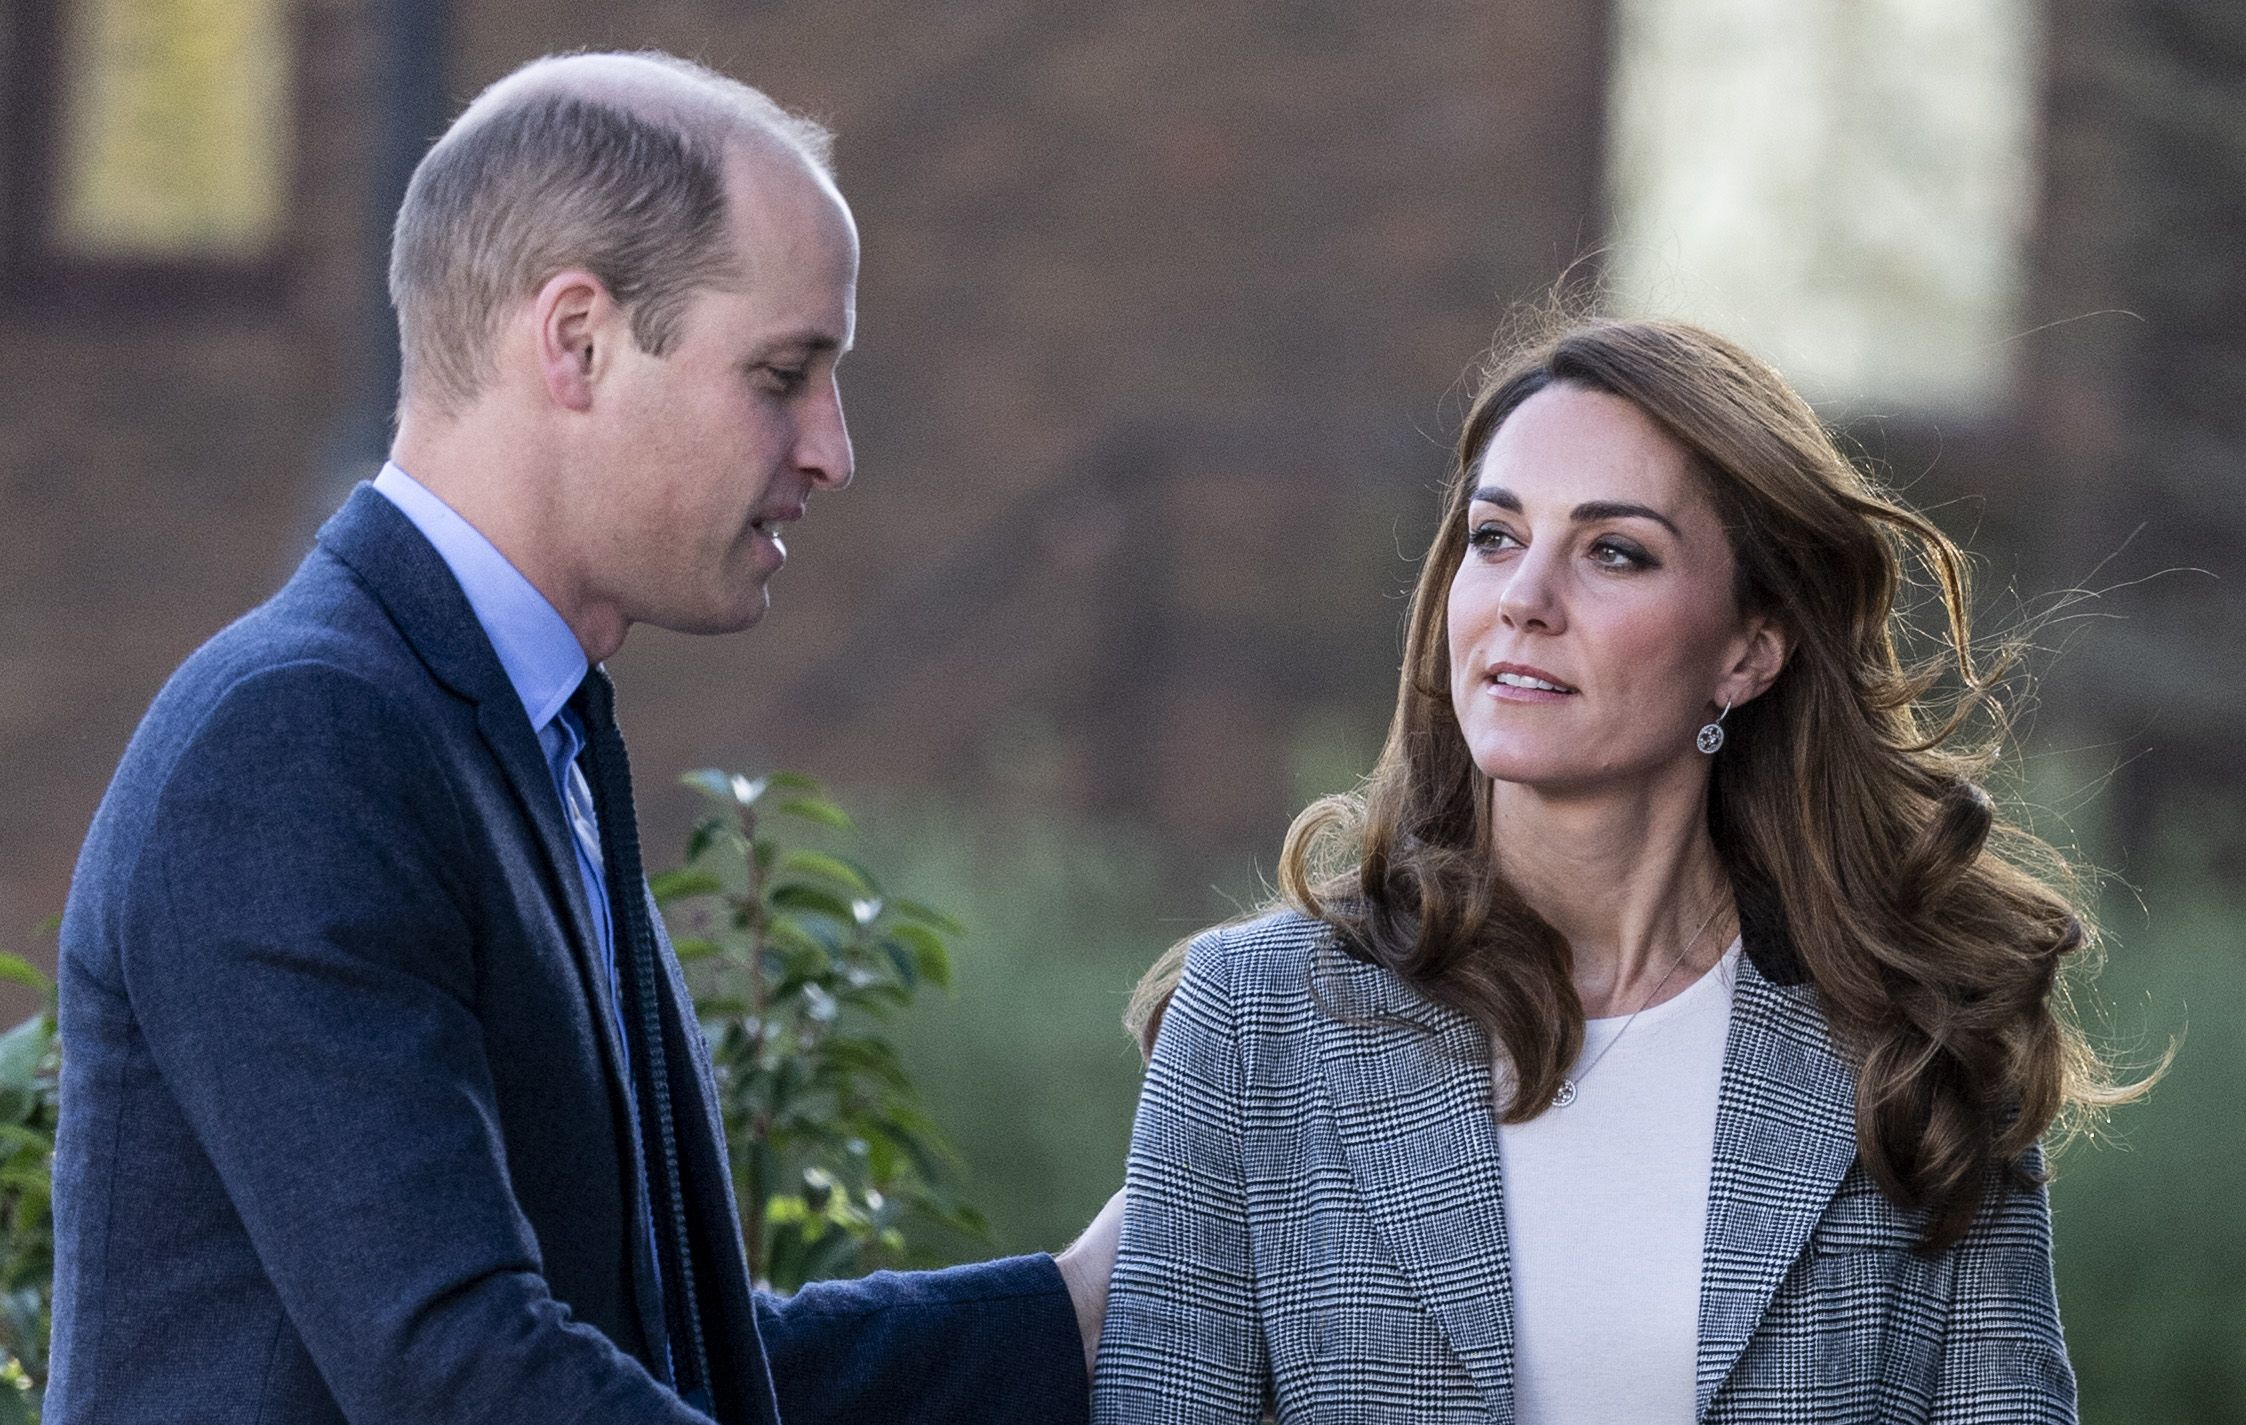 Kate Middleton and Prince William Had a Rare PDA Moment During Their Event at Troubadour White City Theatre